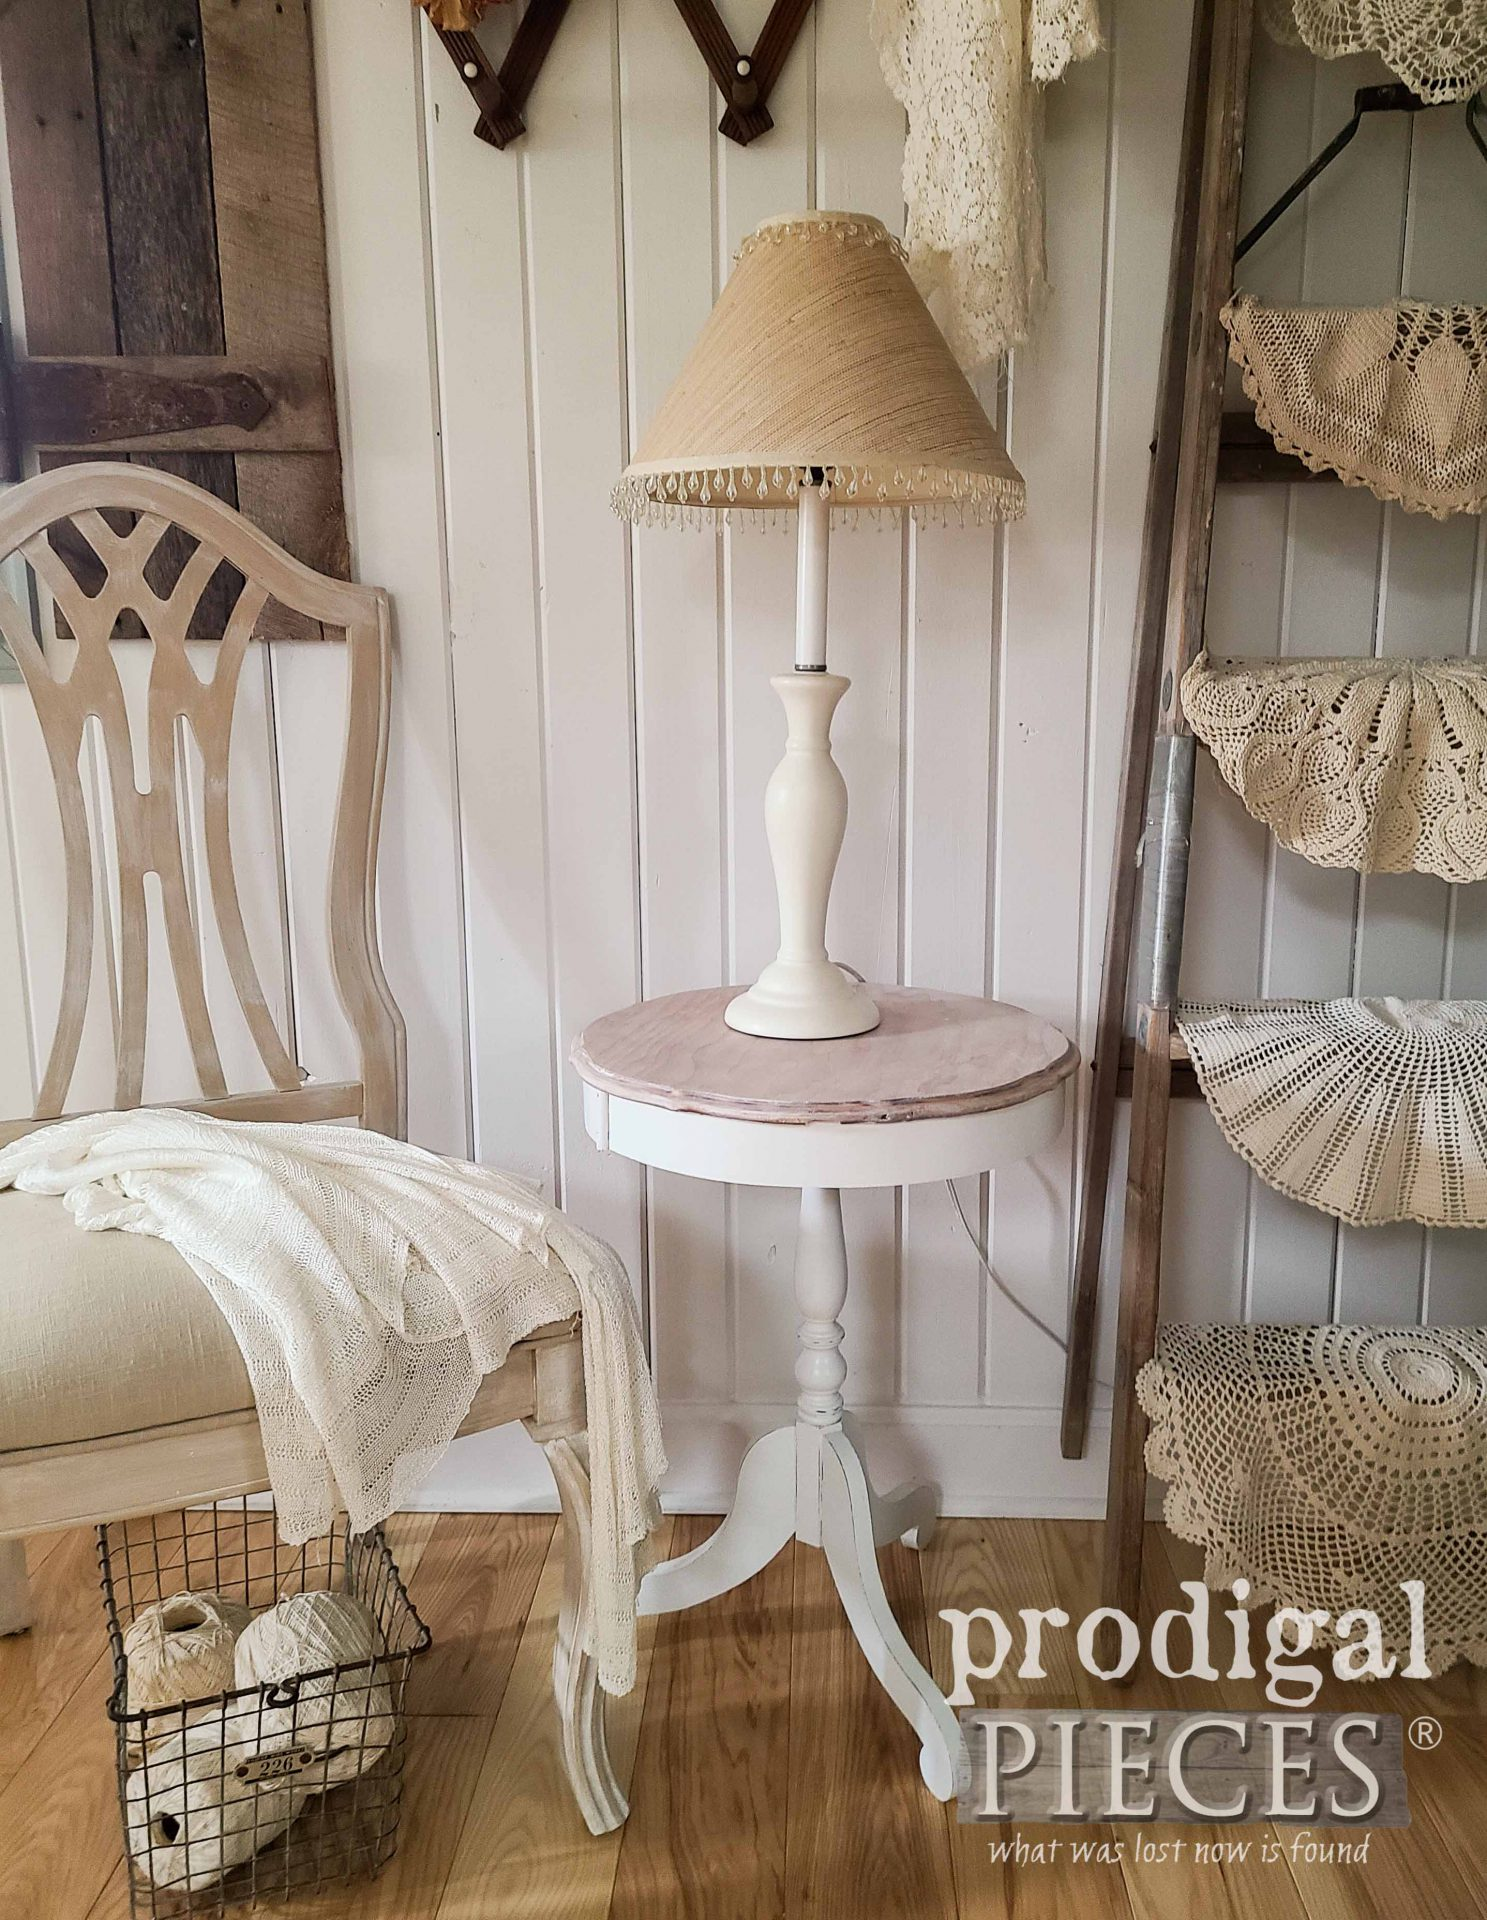 Vintage Farmhouse Decor from Trash and Thrifted Finds by Larissa of Prodigal Pieces | prodigalpieces.com #prodigalpieces #farmhouse #diy #home #homedecor